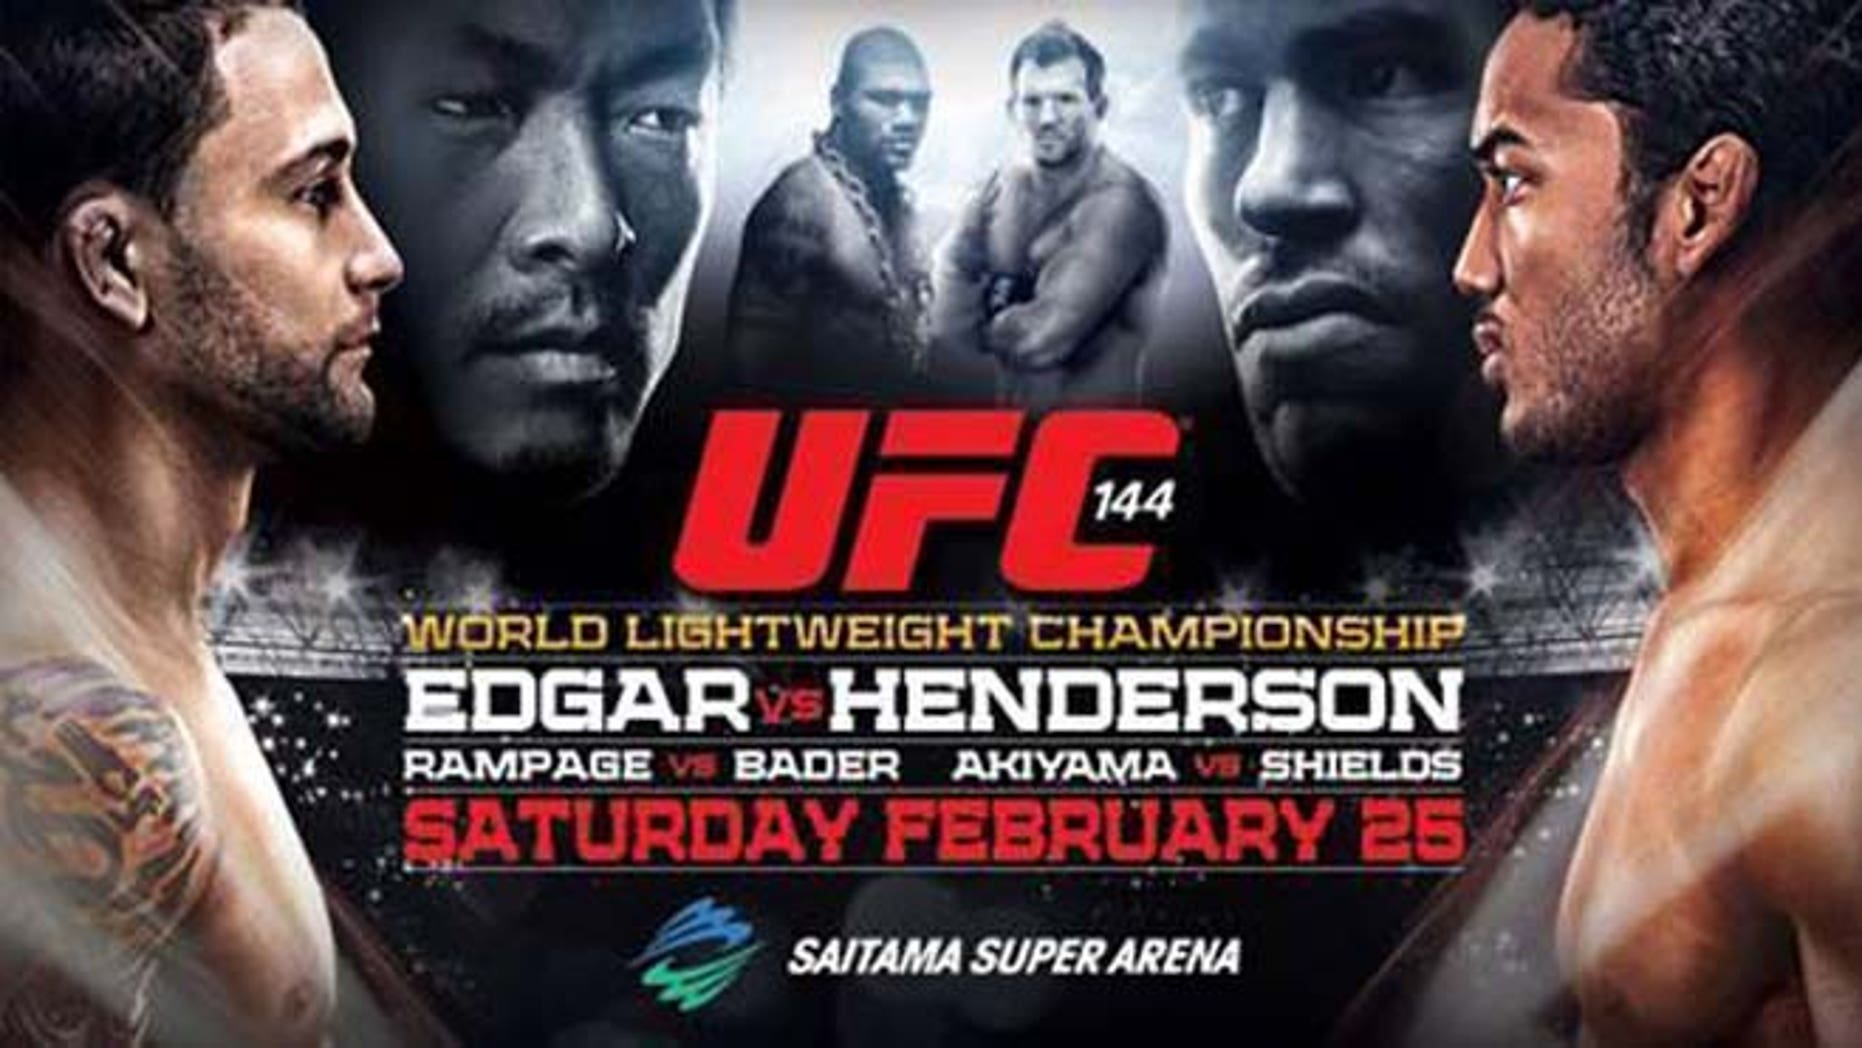 """UFC 144: Henderson Beats Edgar, Pettis Gets """"Knockout Of The Night ..."""